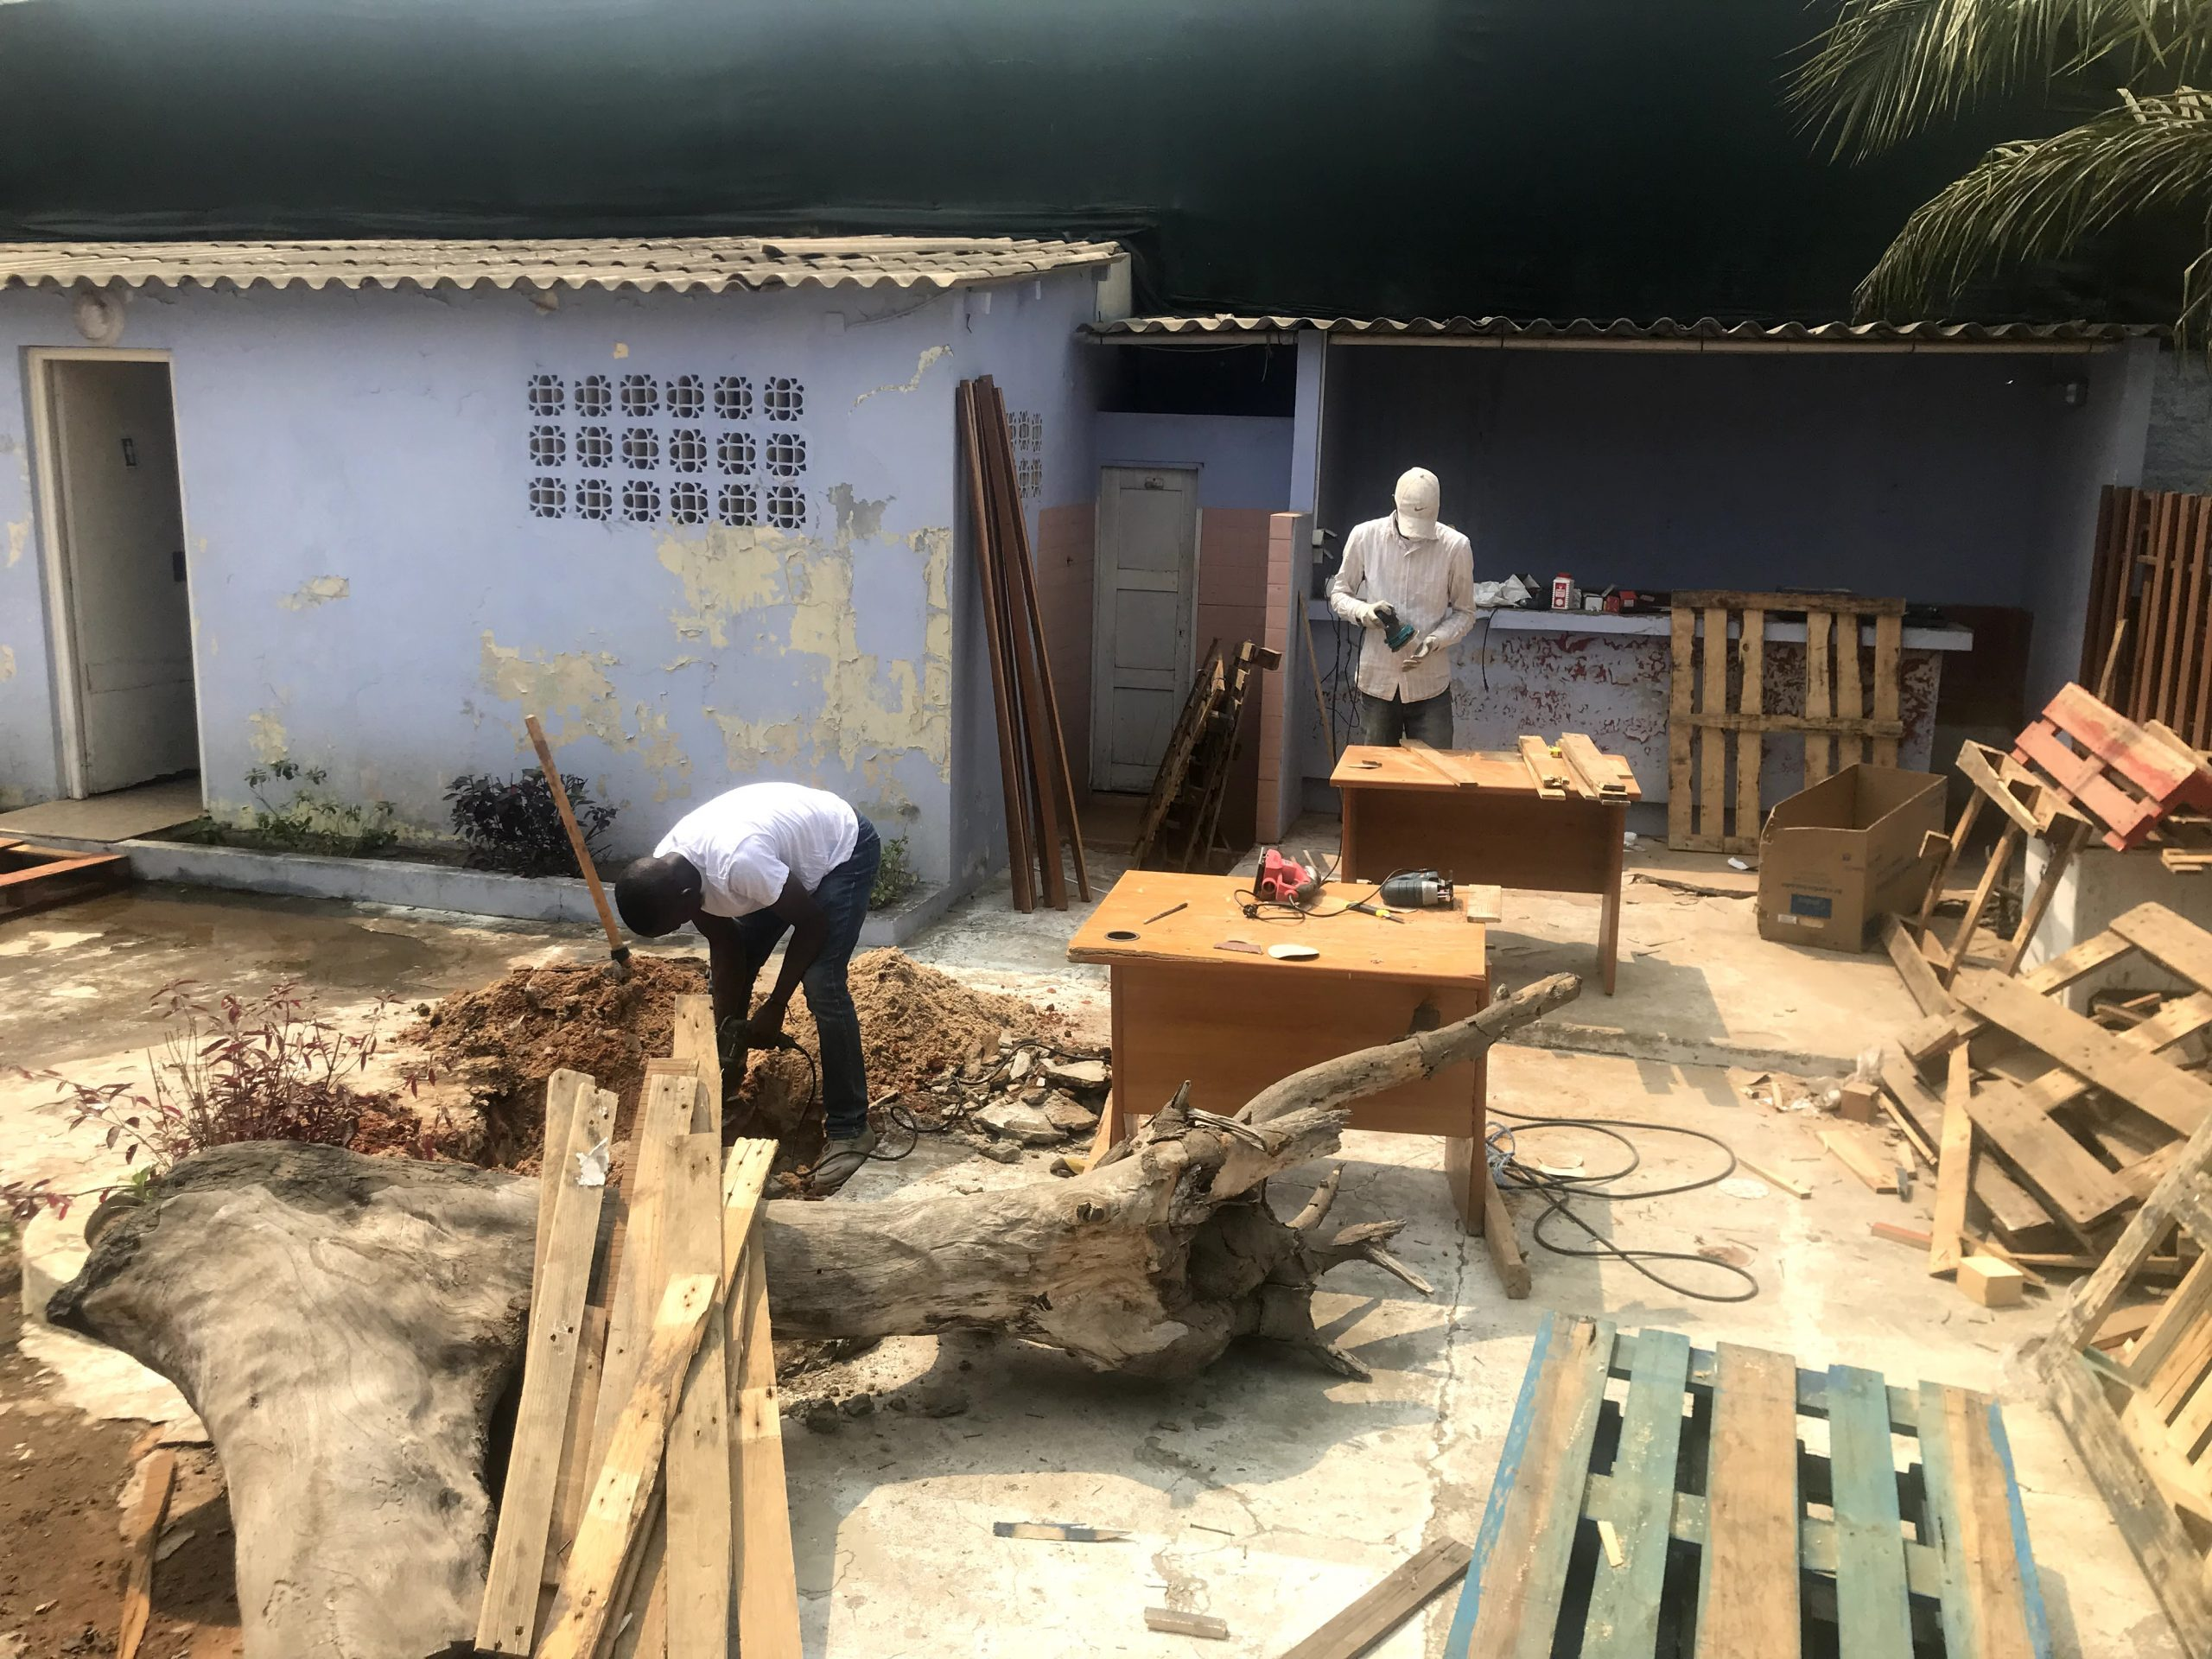 A Menomadin Foundation impact investment in Angola: professional training for youth at risk in Luanda, the carpentry social business.